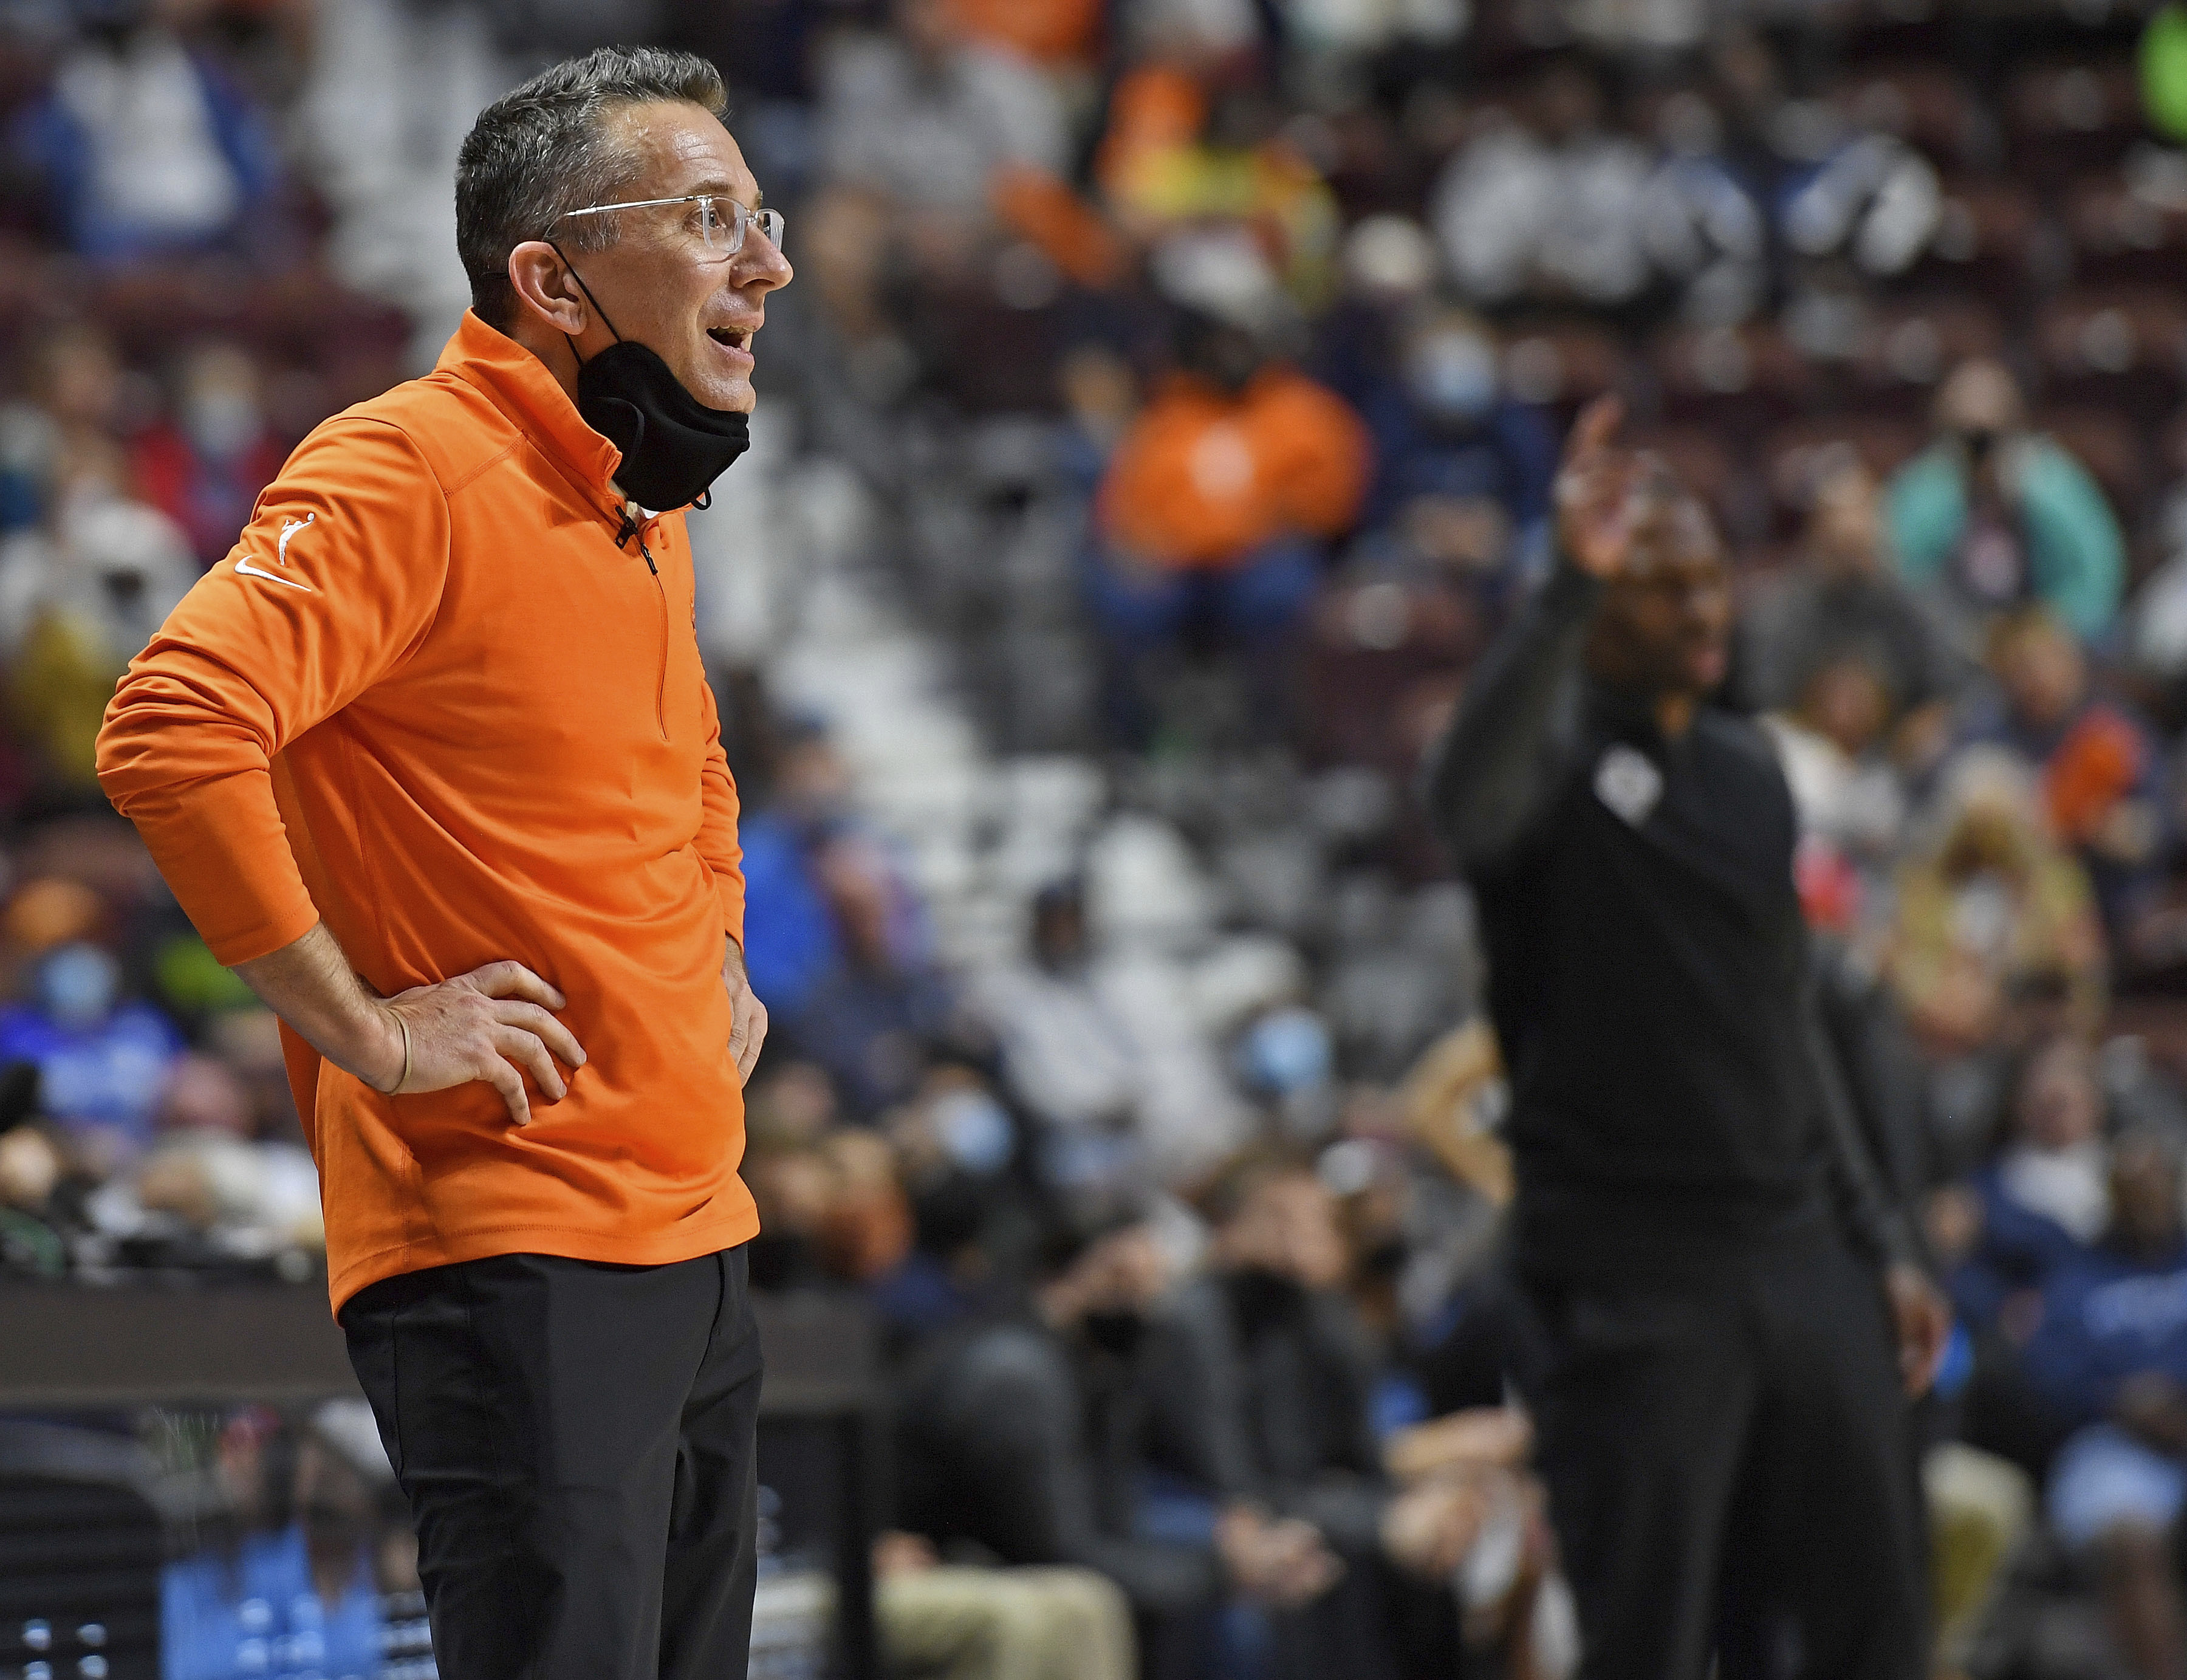 The WNBA's inability to provide comfortable travel arrangements for its players even during the WNBA semifinals series was met with deep frustration by Sky coach/general manager James Wade and Sun coach/general manager Curt Miller.